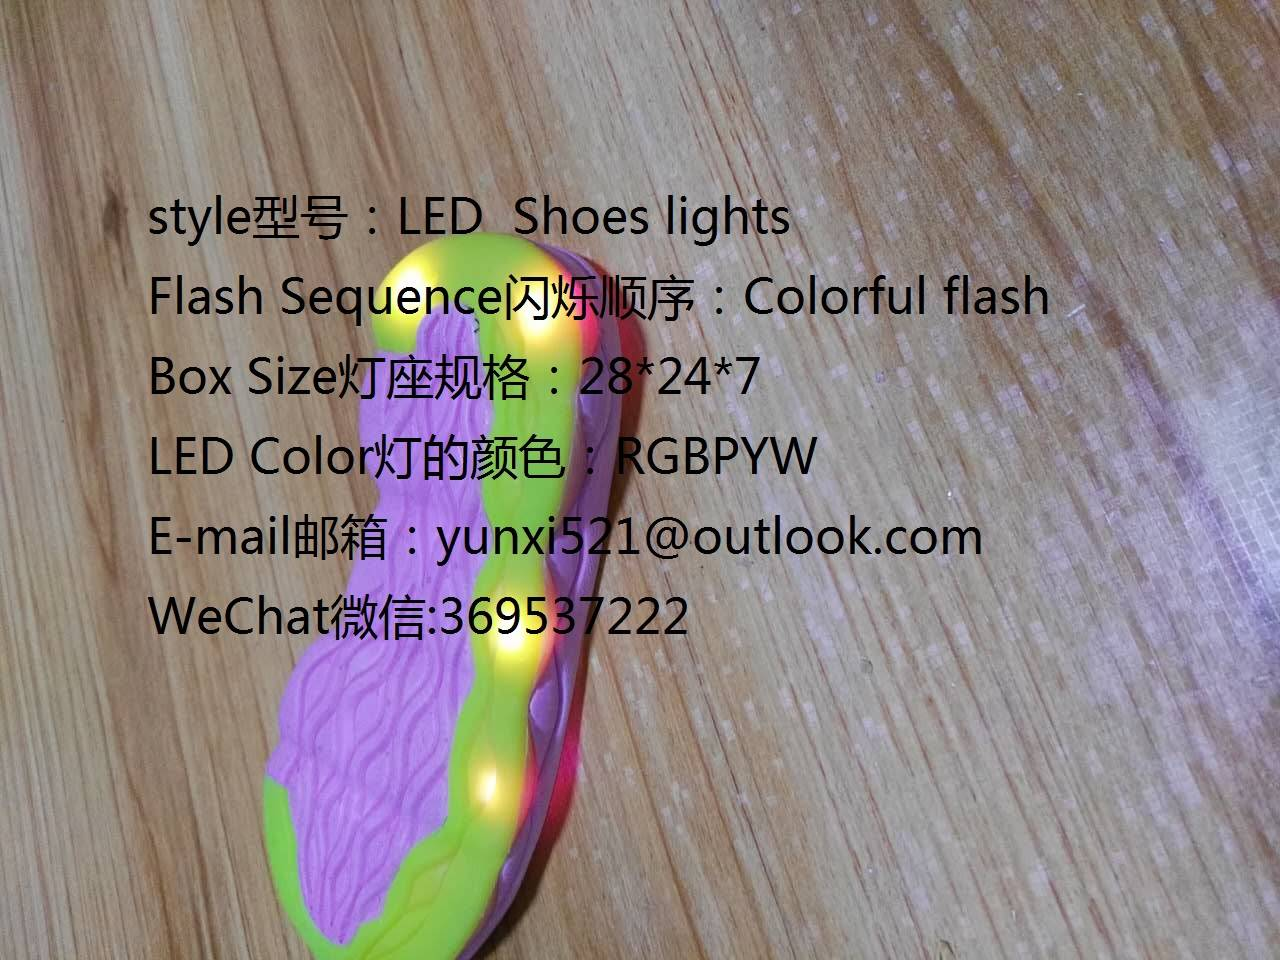 LED SHOES LIGHTS